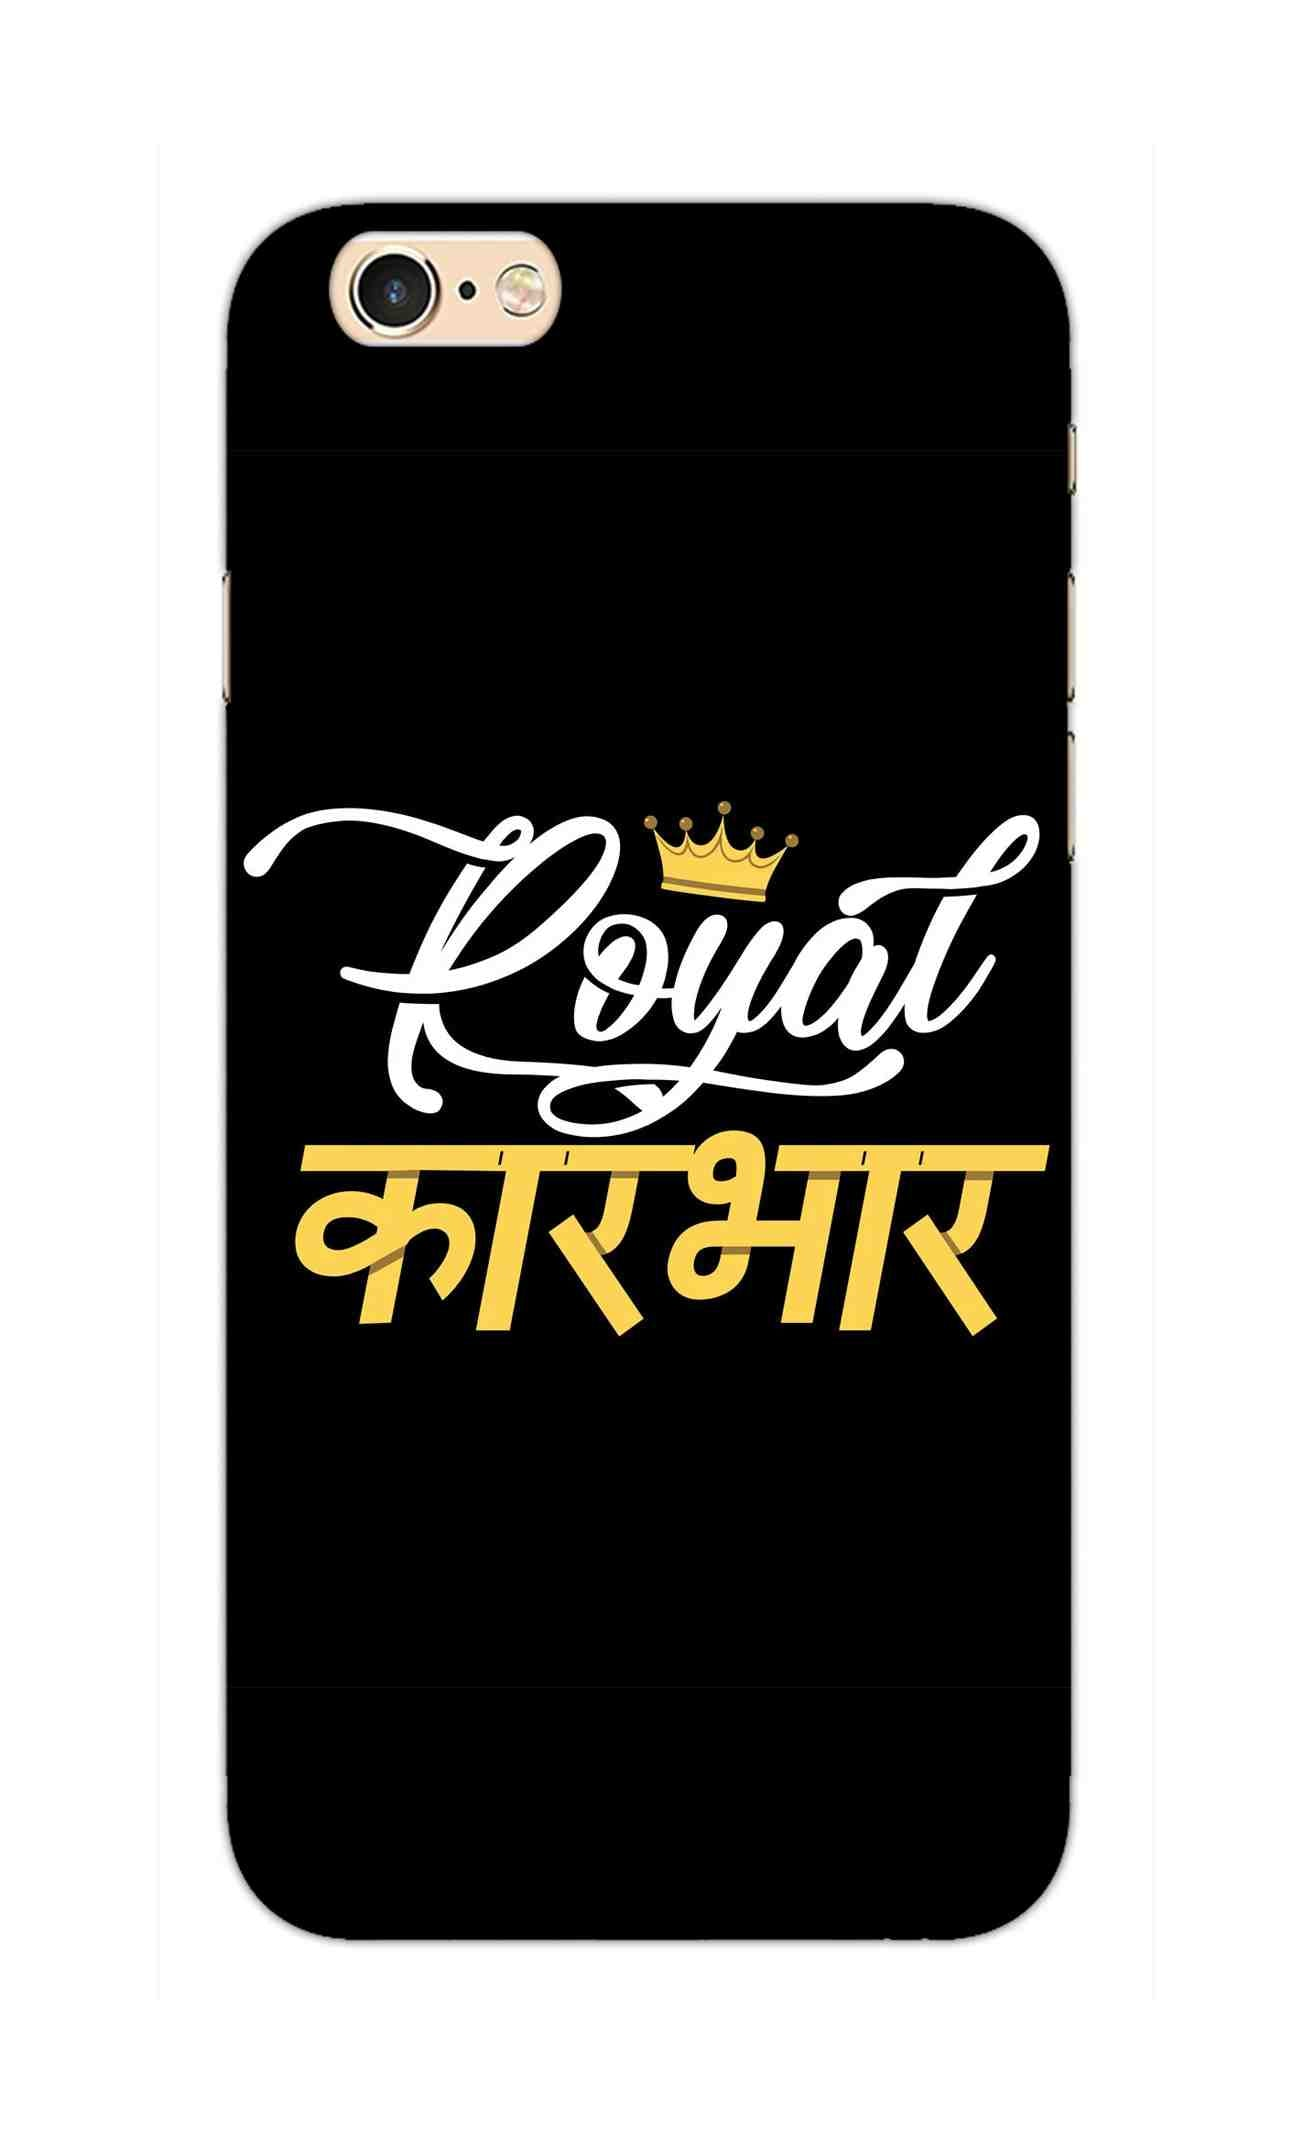 Royal Karbhar Typography For Kings iPhone 6S Plus Mobile Cover Case - MADANYU